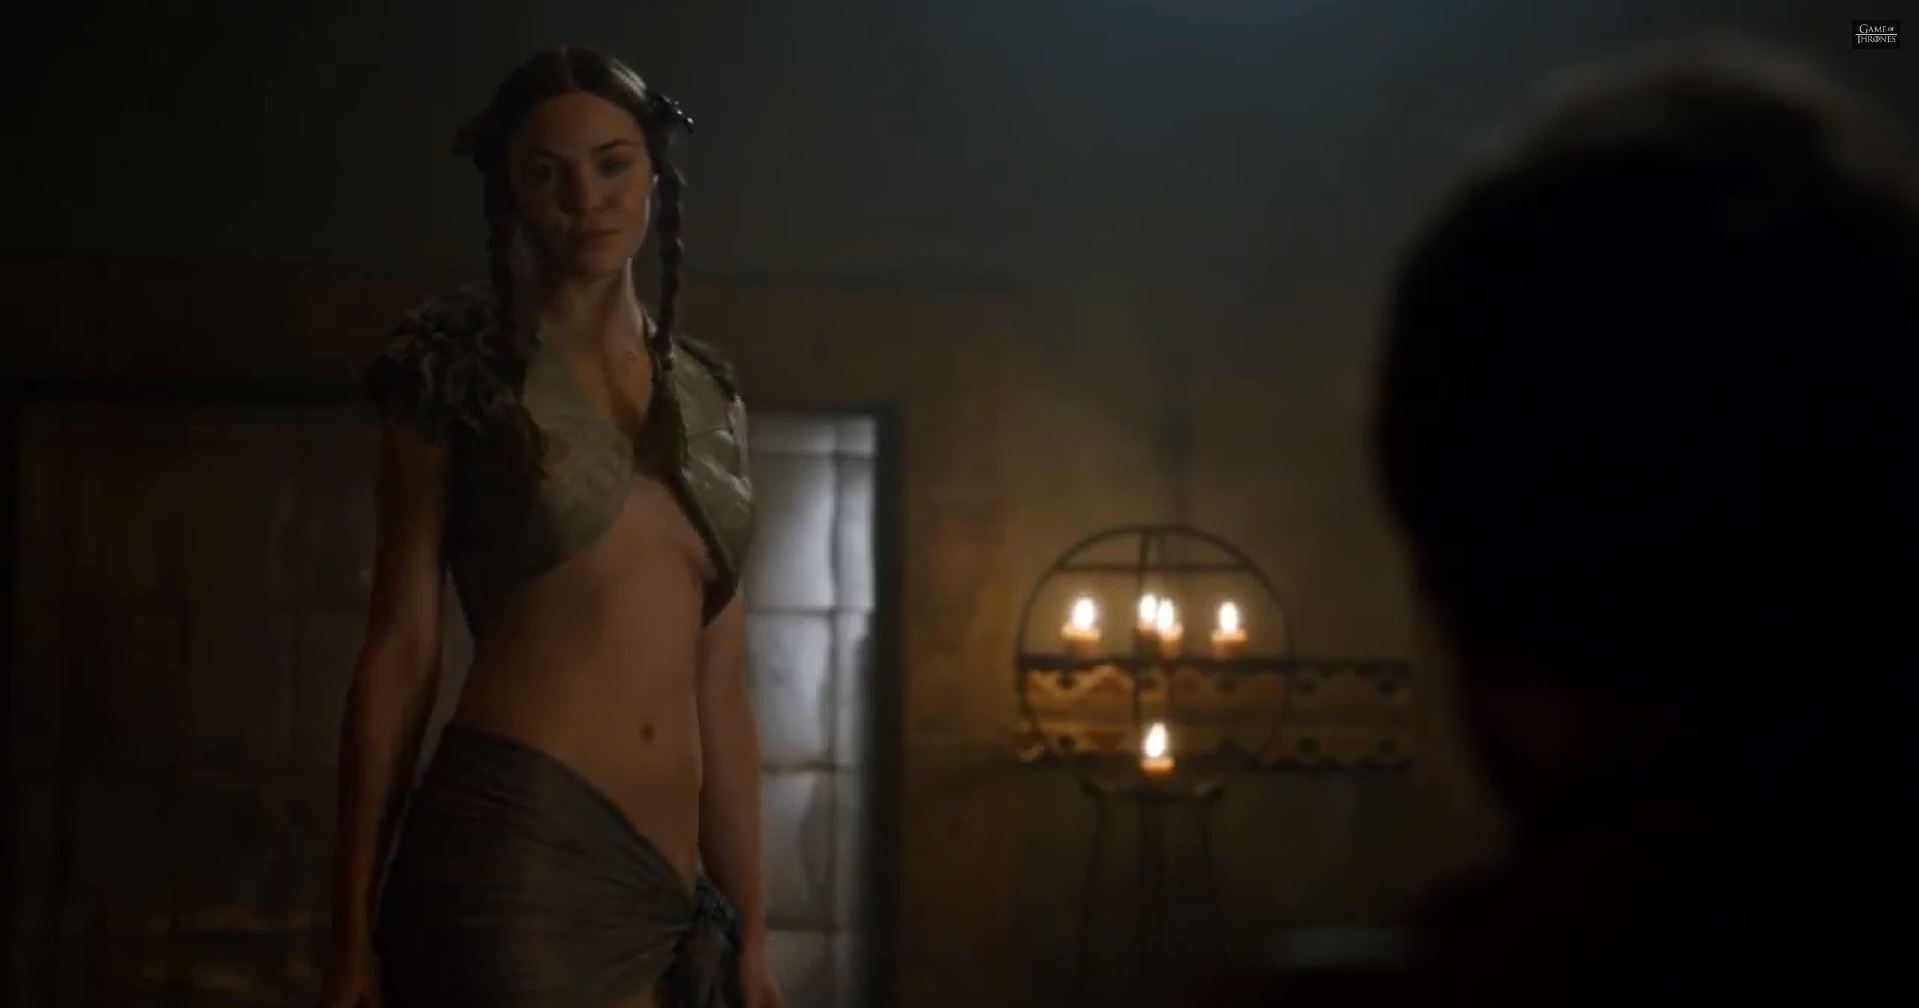 Game Of Thrones Season 5 Preview. Sophie Turner as Sansa Stark Alayne nude